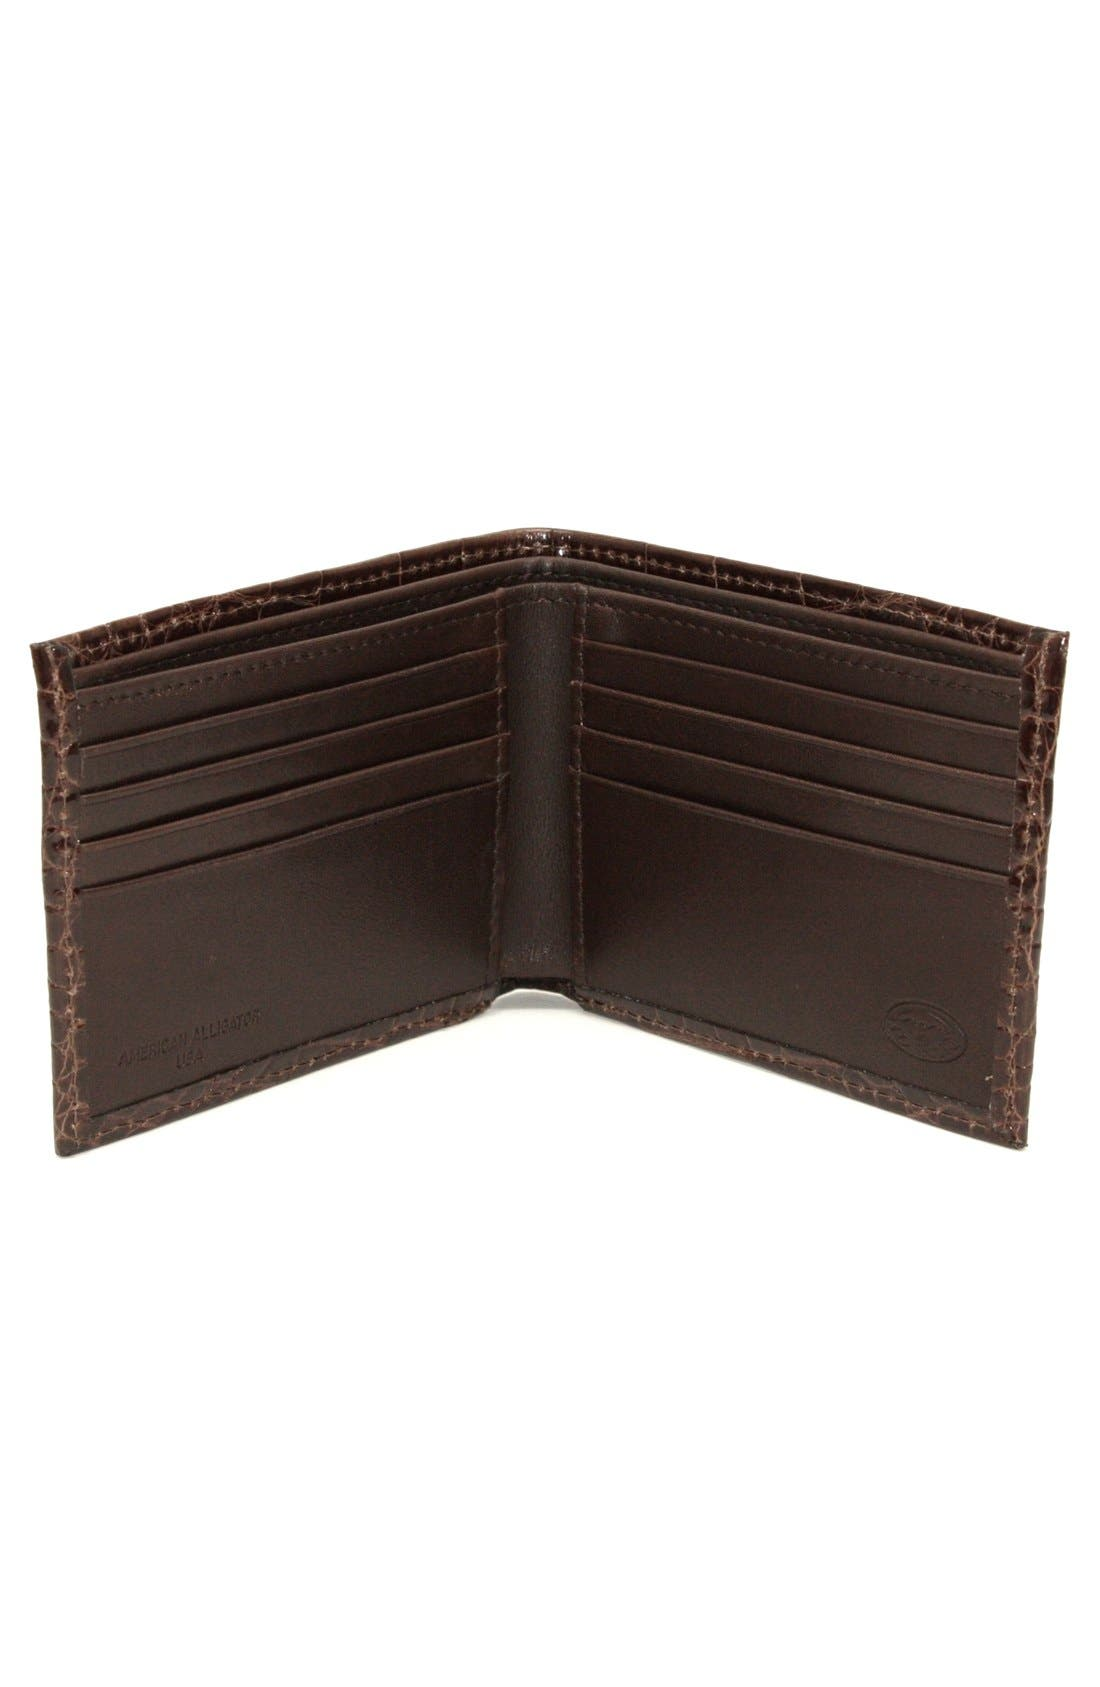 Alternate Image 2  - Torino Belts Genuine Alligator Wallet